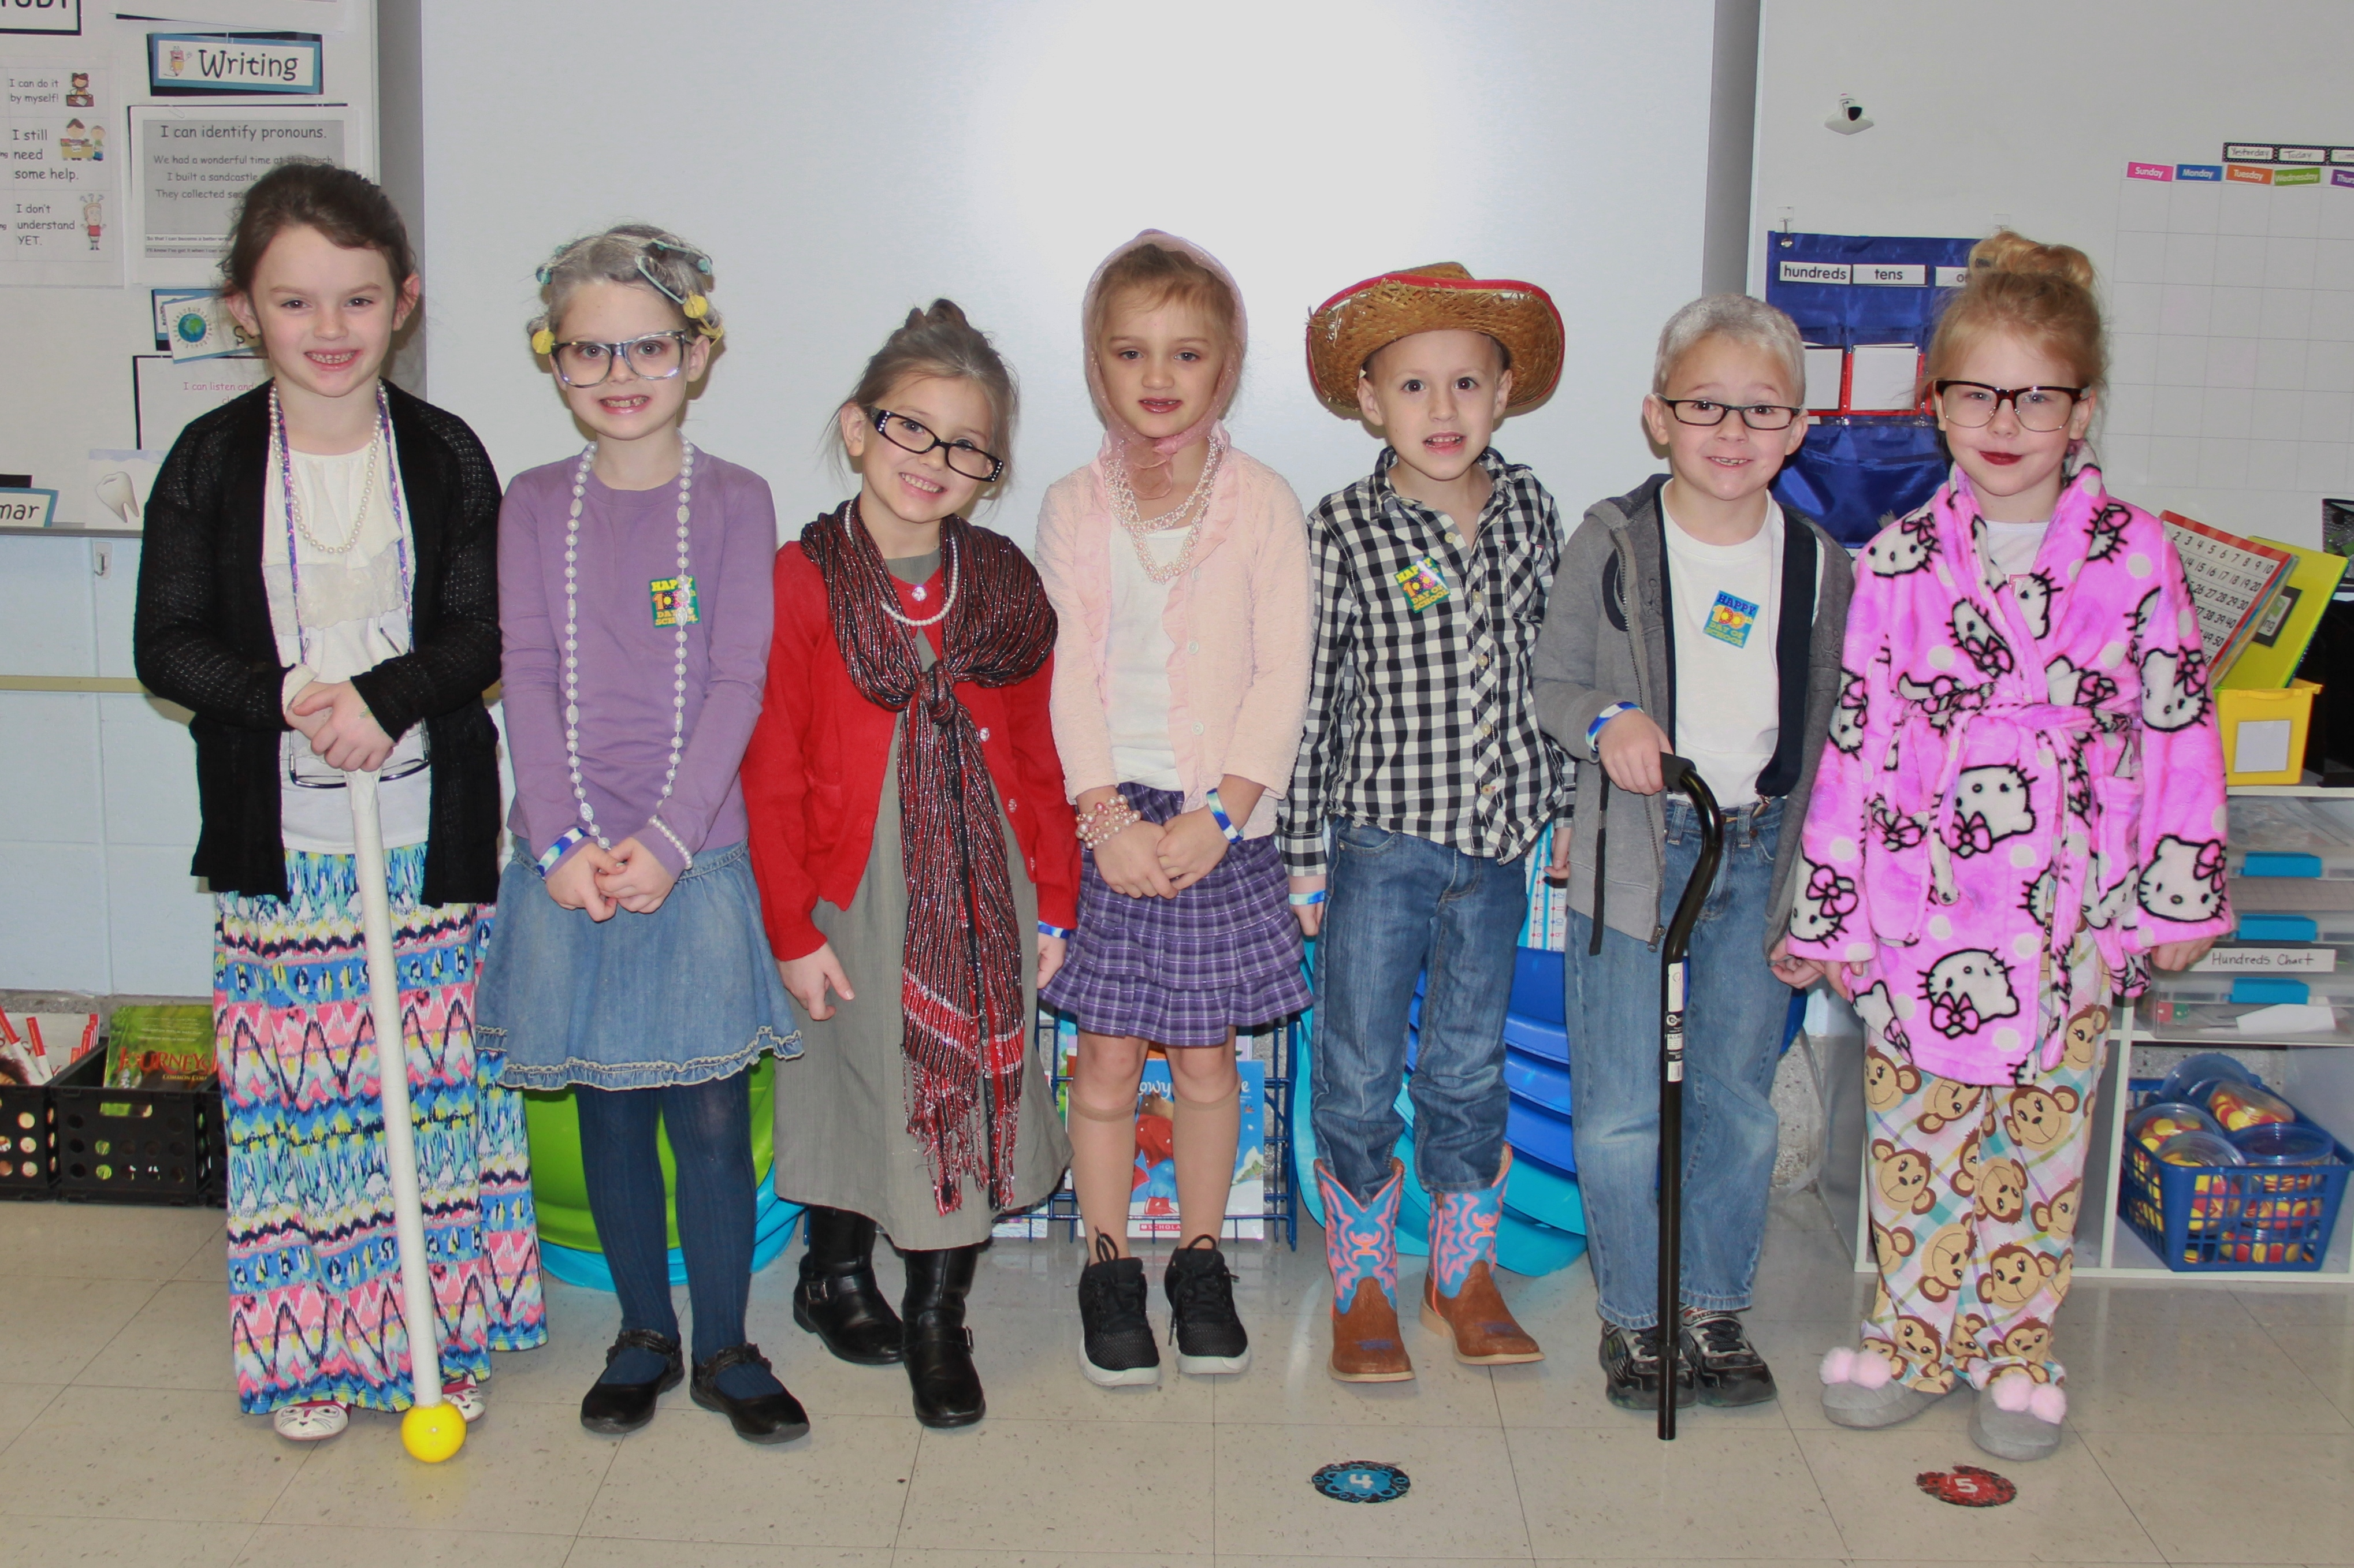 Students in Mrs. Mills' class dressed up for the 100th day of school!